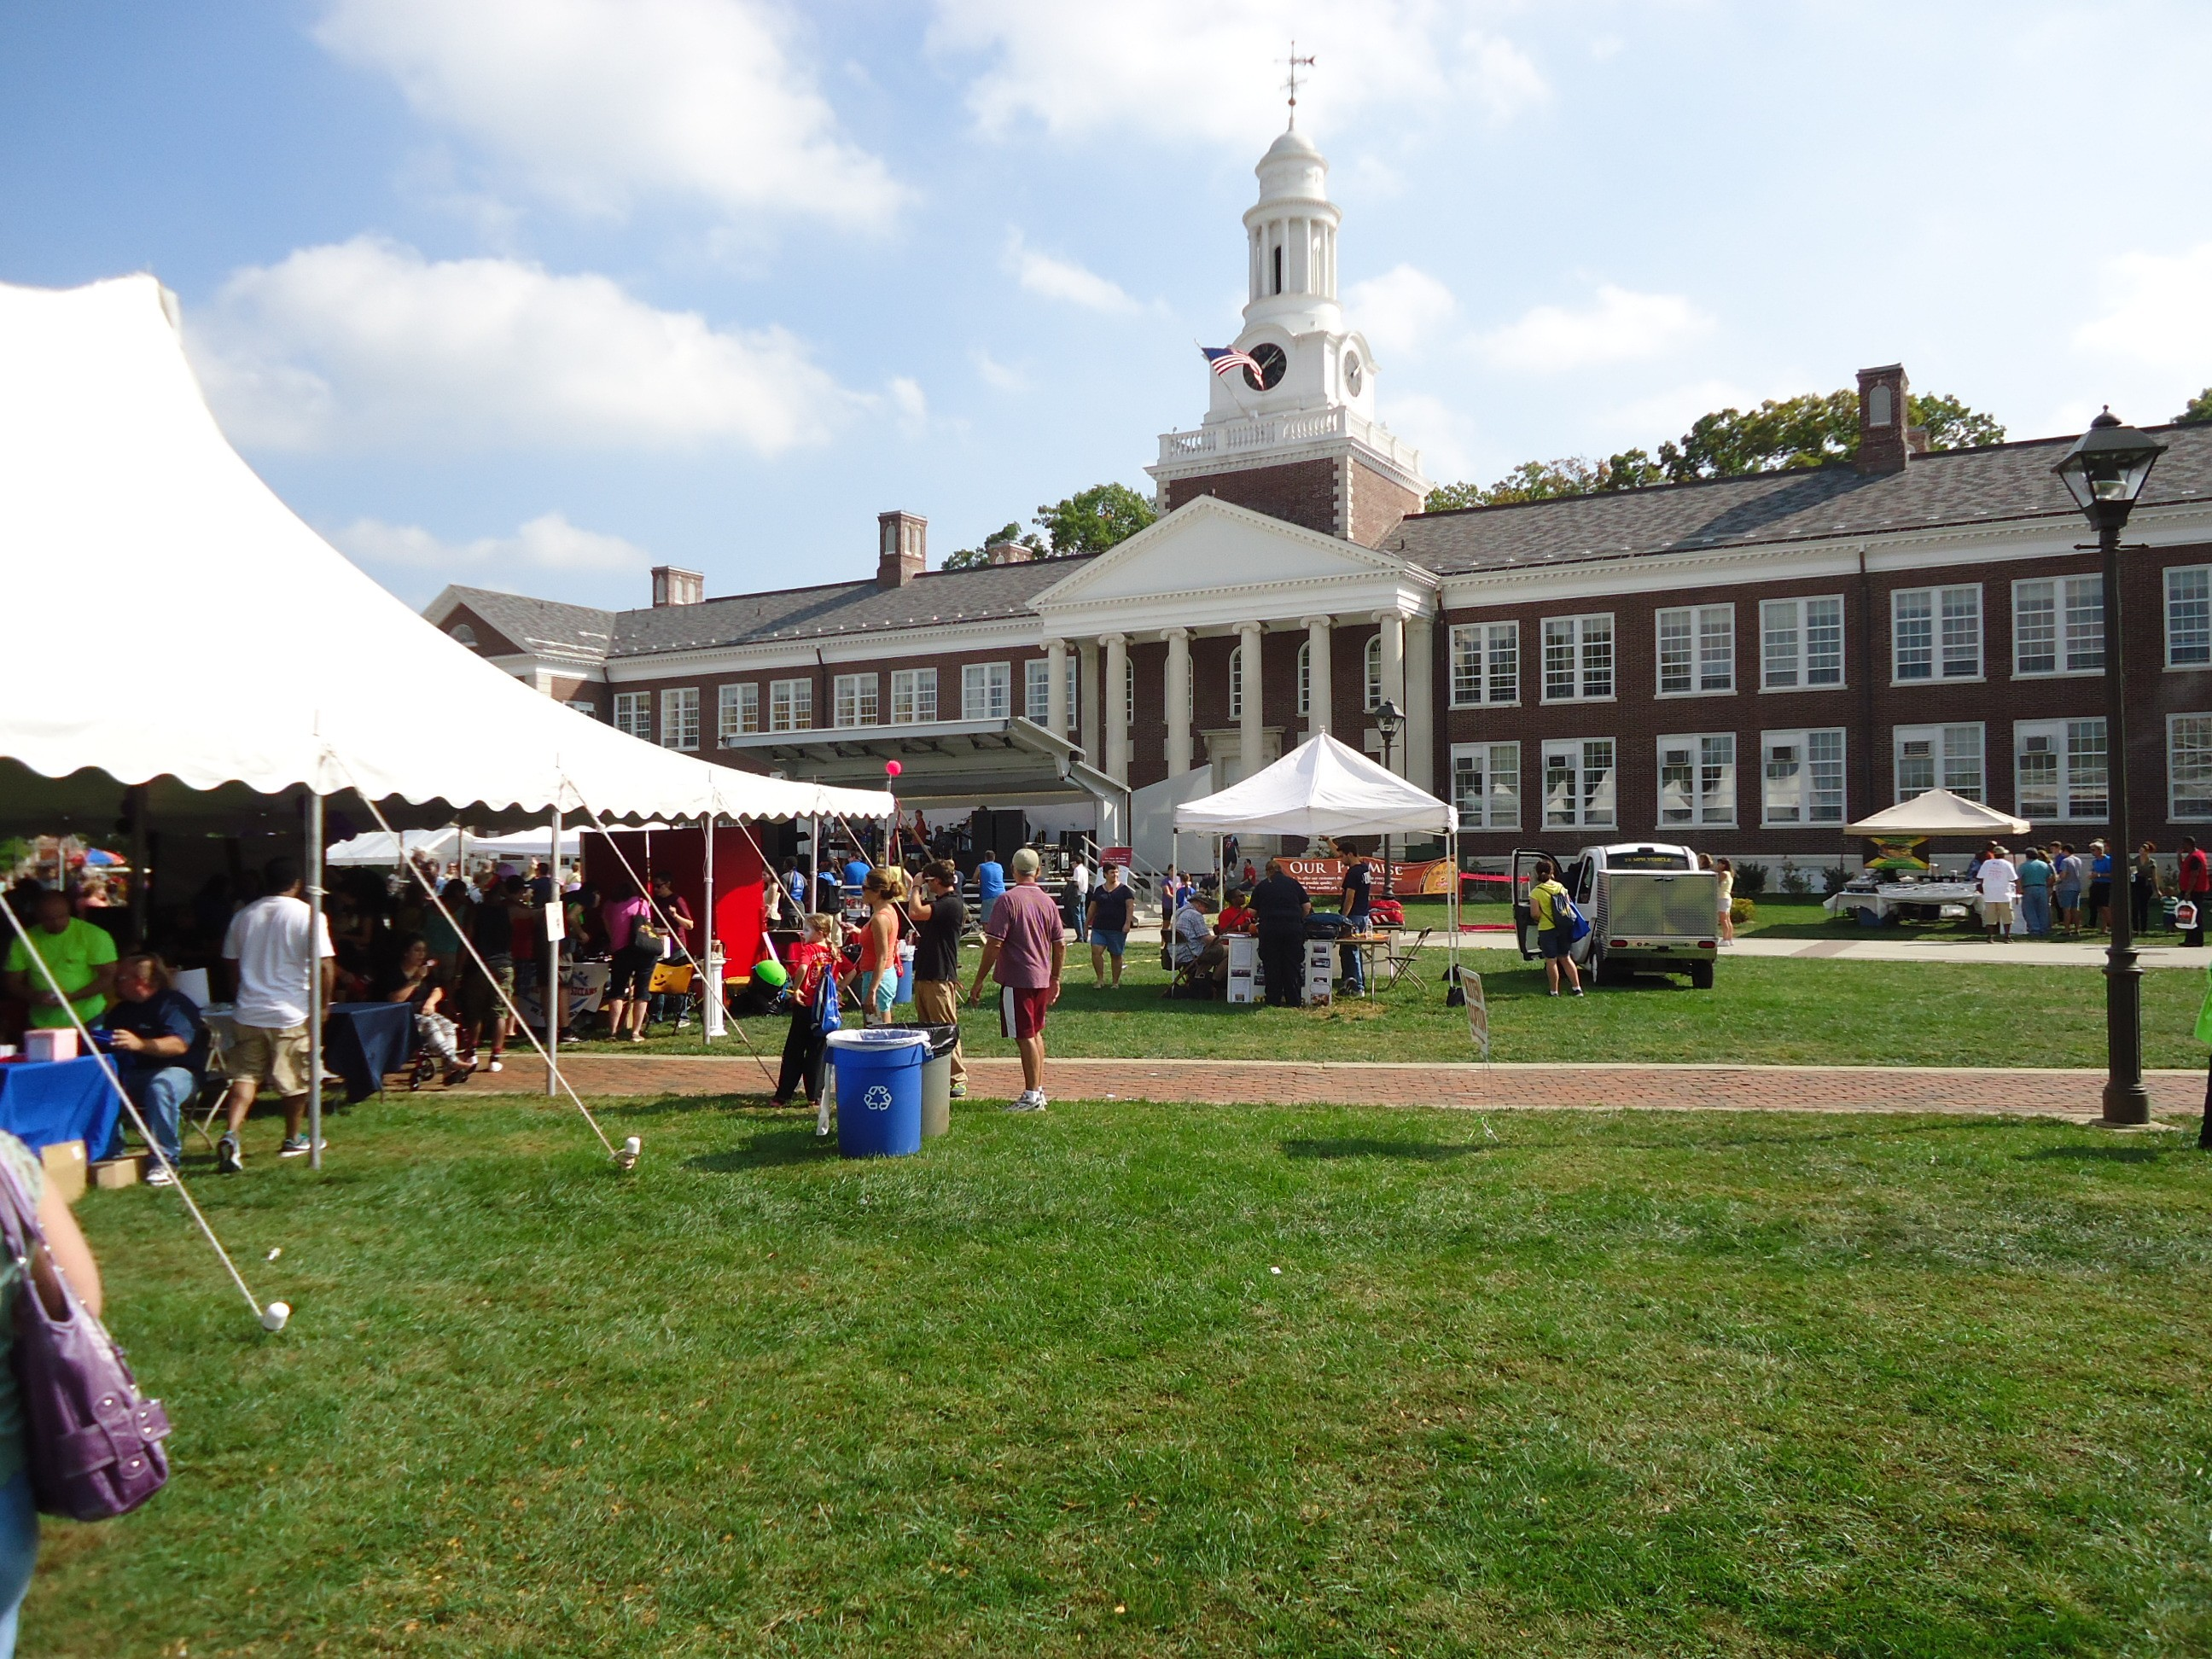 filetcnj the college of new jersey outdoor fair event music and